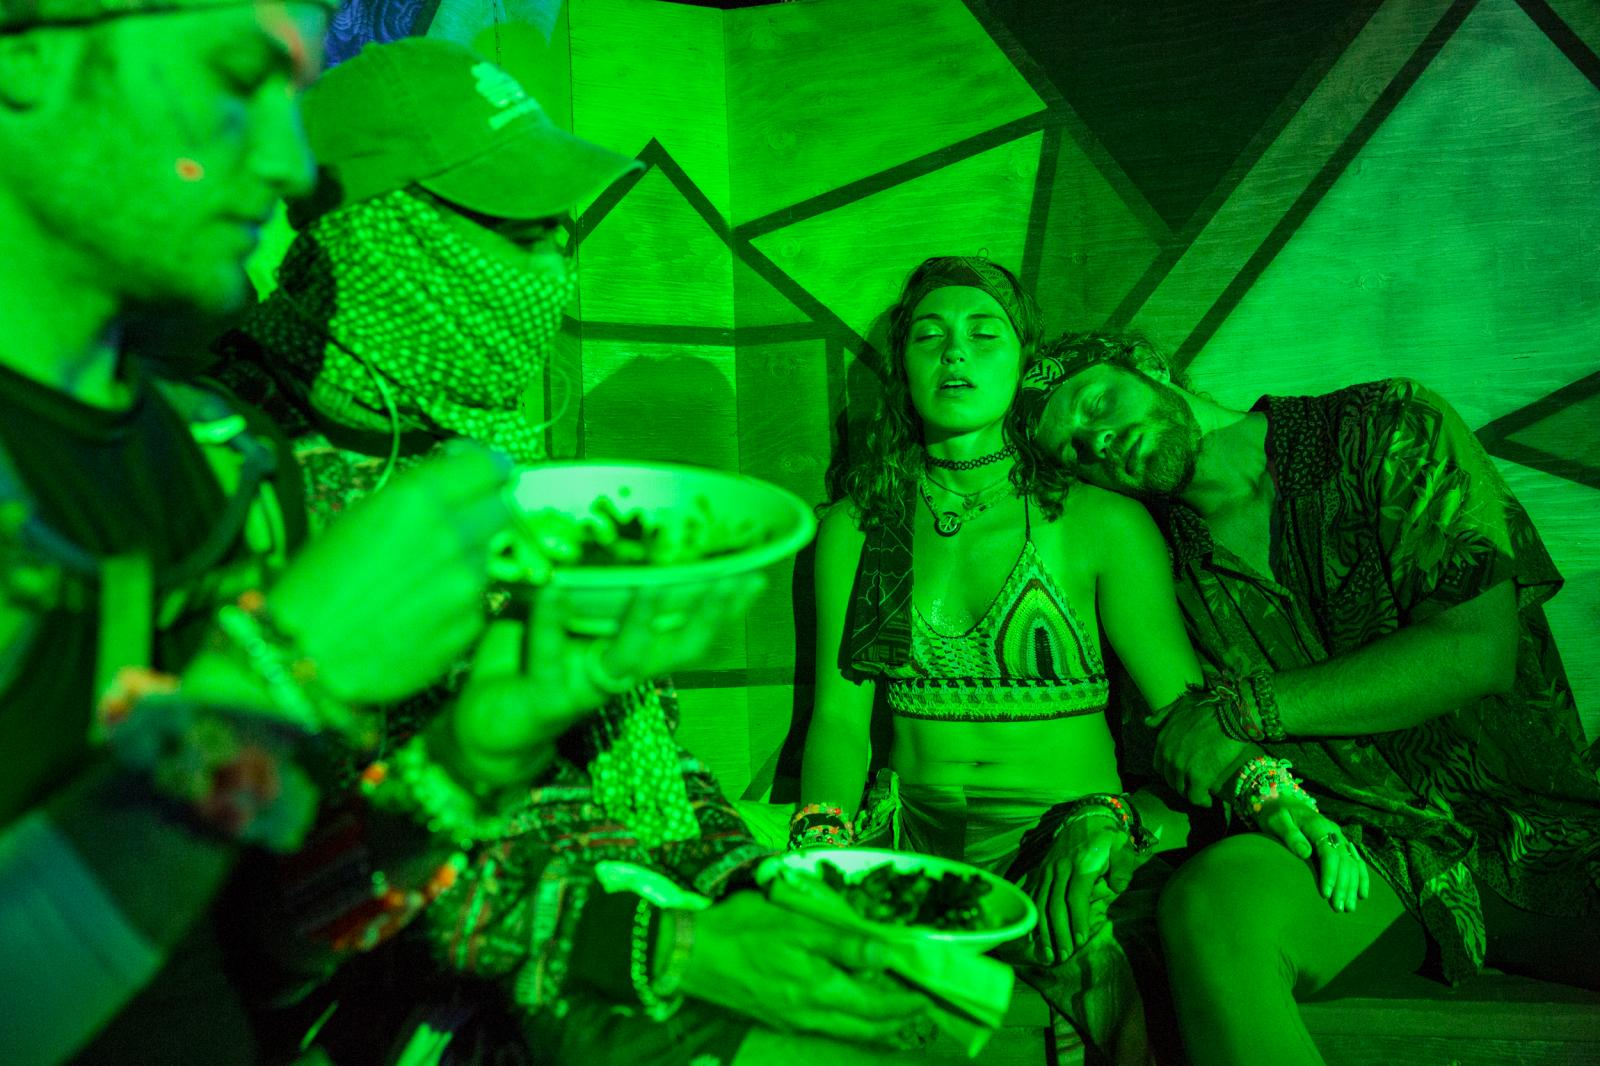 Festival-goers rest inside the Sherwood Forest during the second day of Electric Forest on June 23, 2017 in Rothbury, Mich. The four-day and two weekend-long music festival drew an estimated 40,000 attendance for the first weekend.